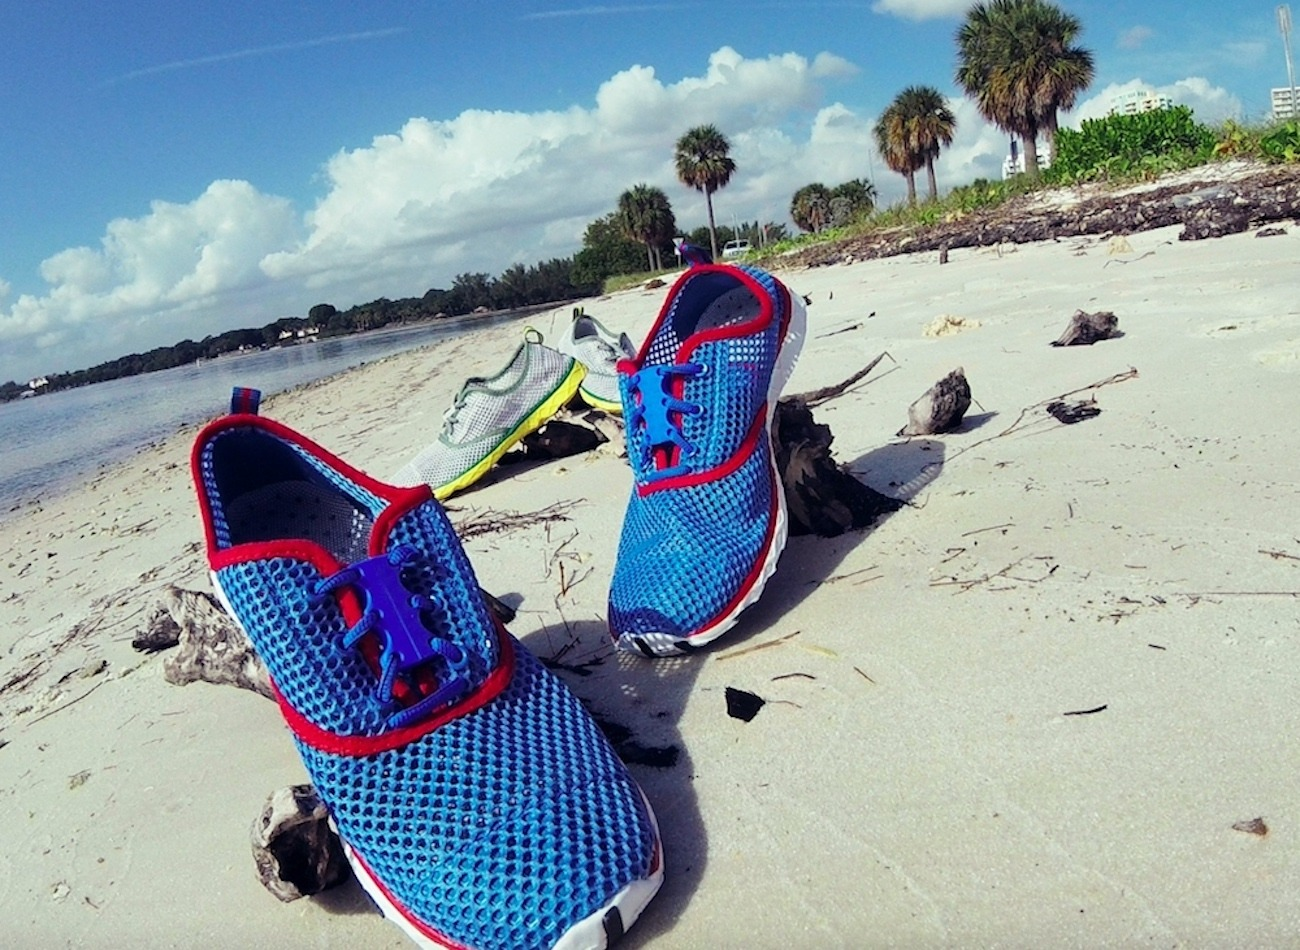 Nova Magnetics – All Terrain Running Shoes